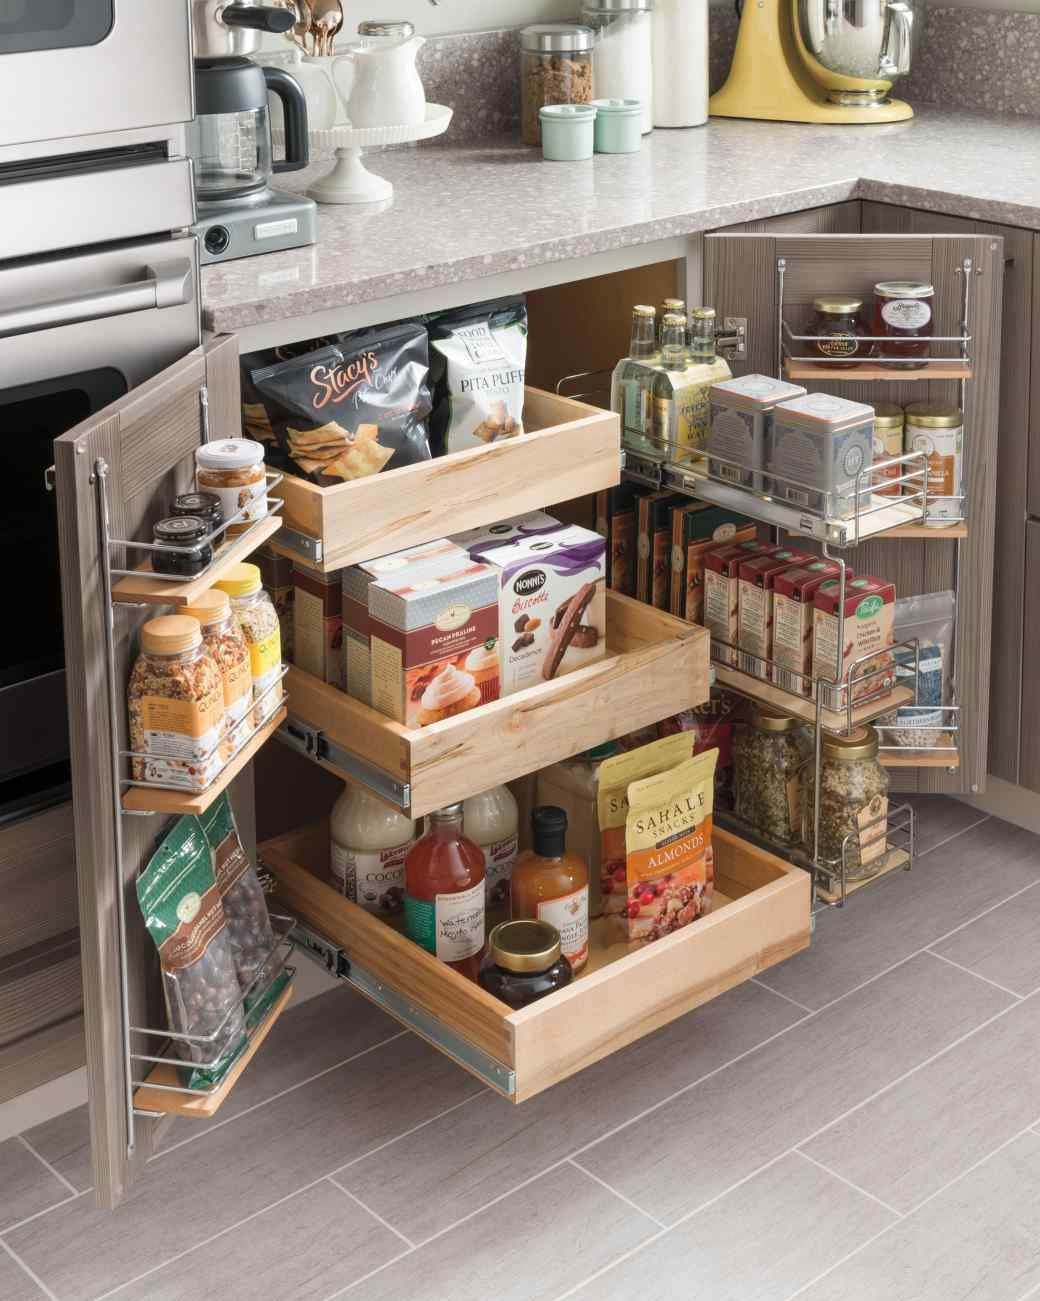 Small kitchen storage ideas for a more efficient space storage ideas organizing and storage - Pinterest storage ideas for small spaces ideas ...